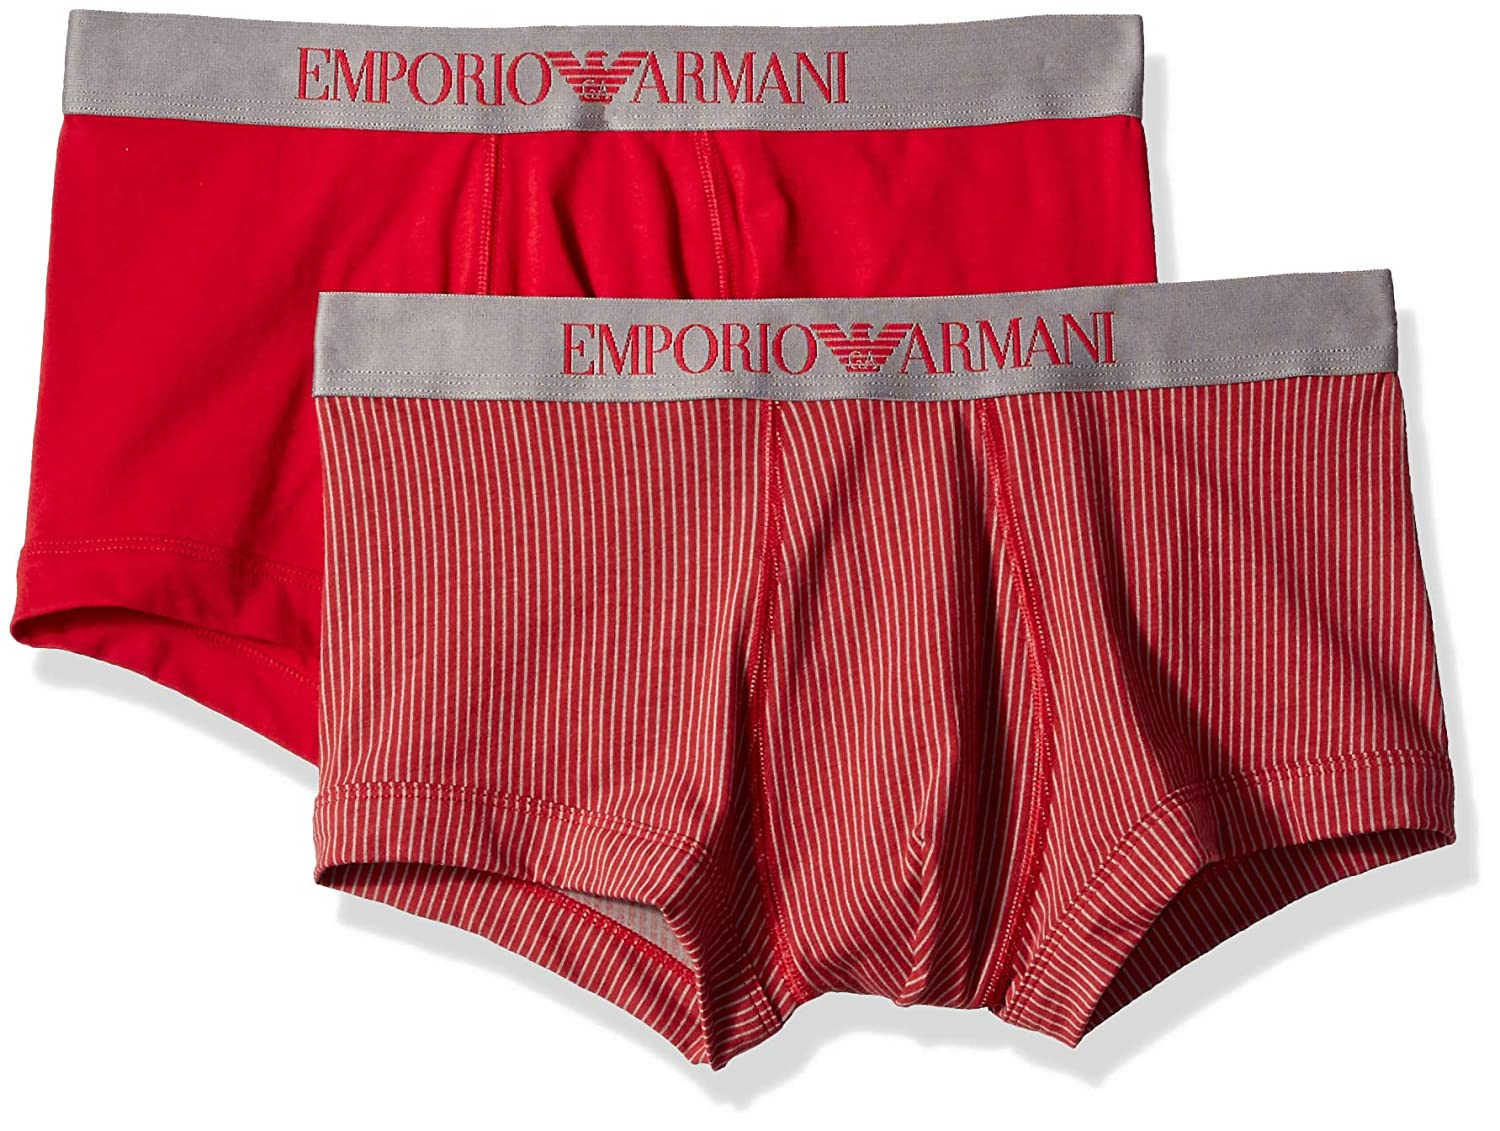 Emporio Armani Men's Printed Patterns 2 Pack Trunk 1112108A504